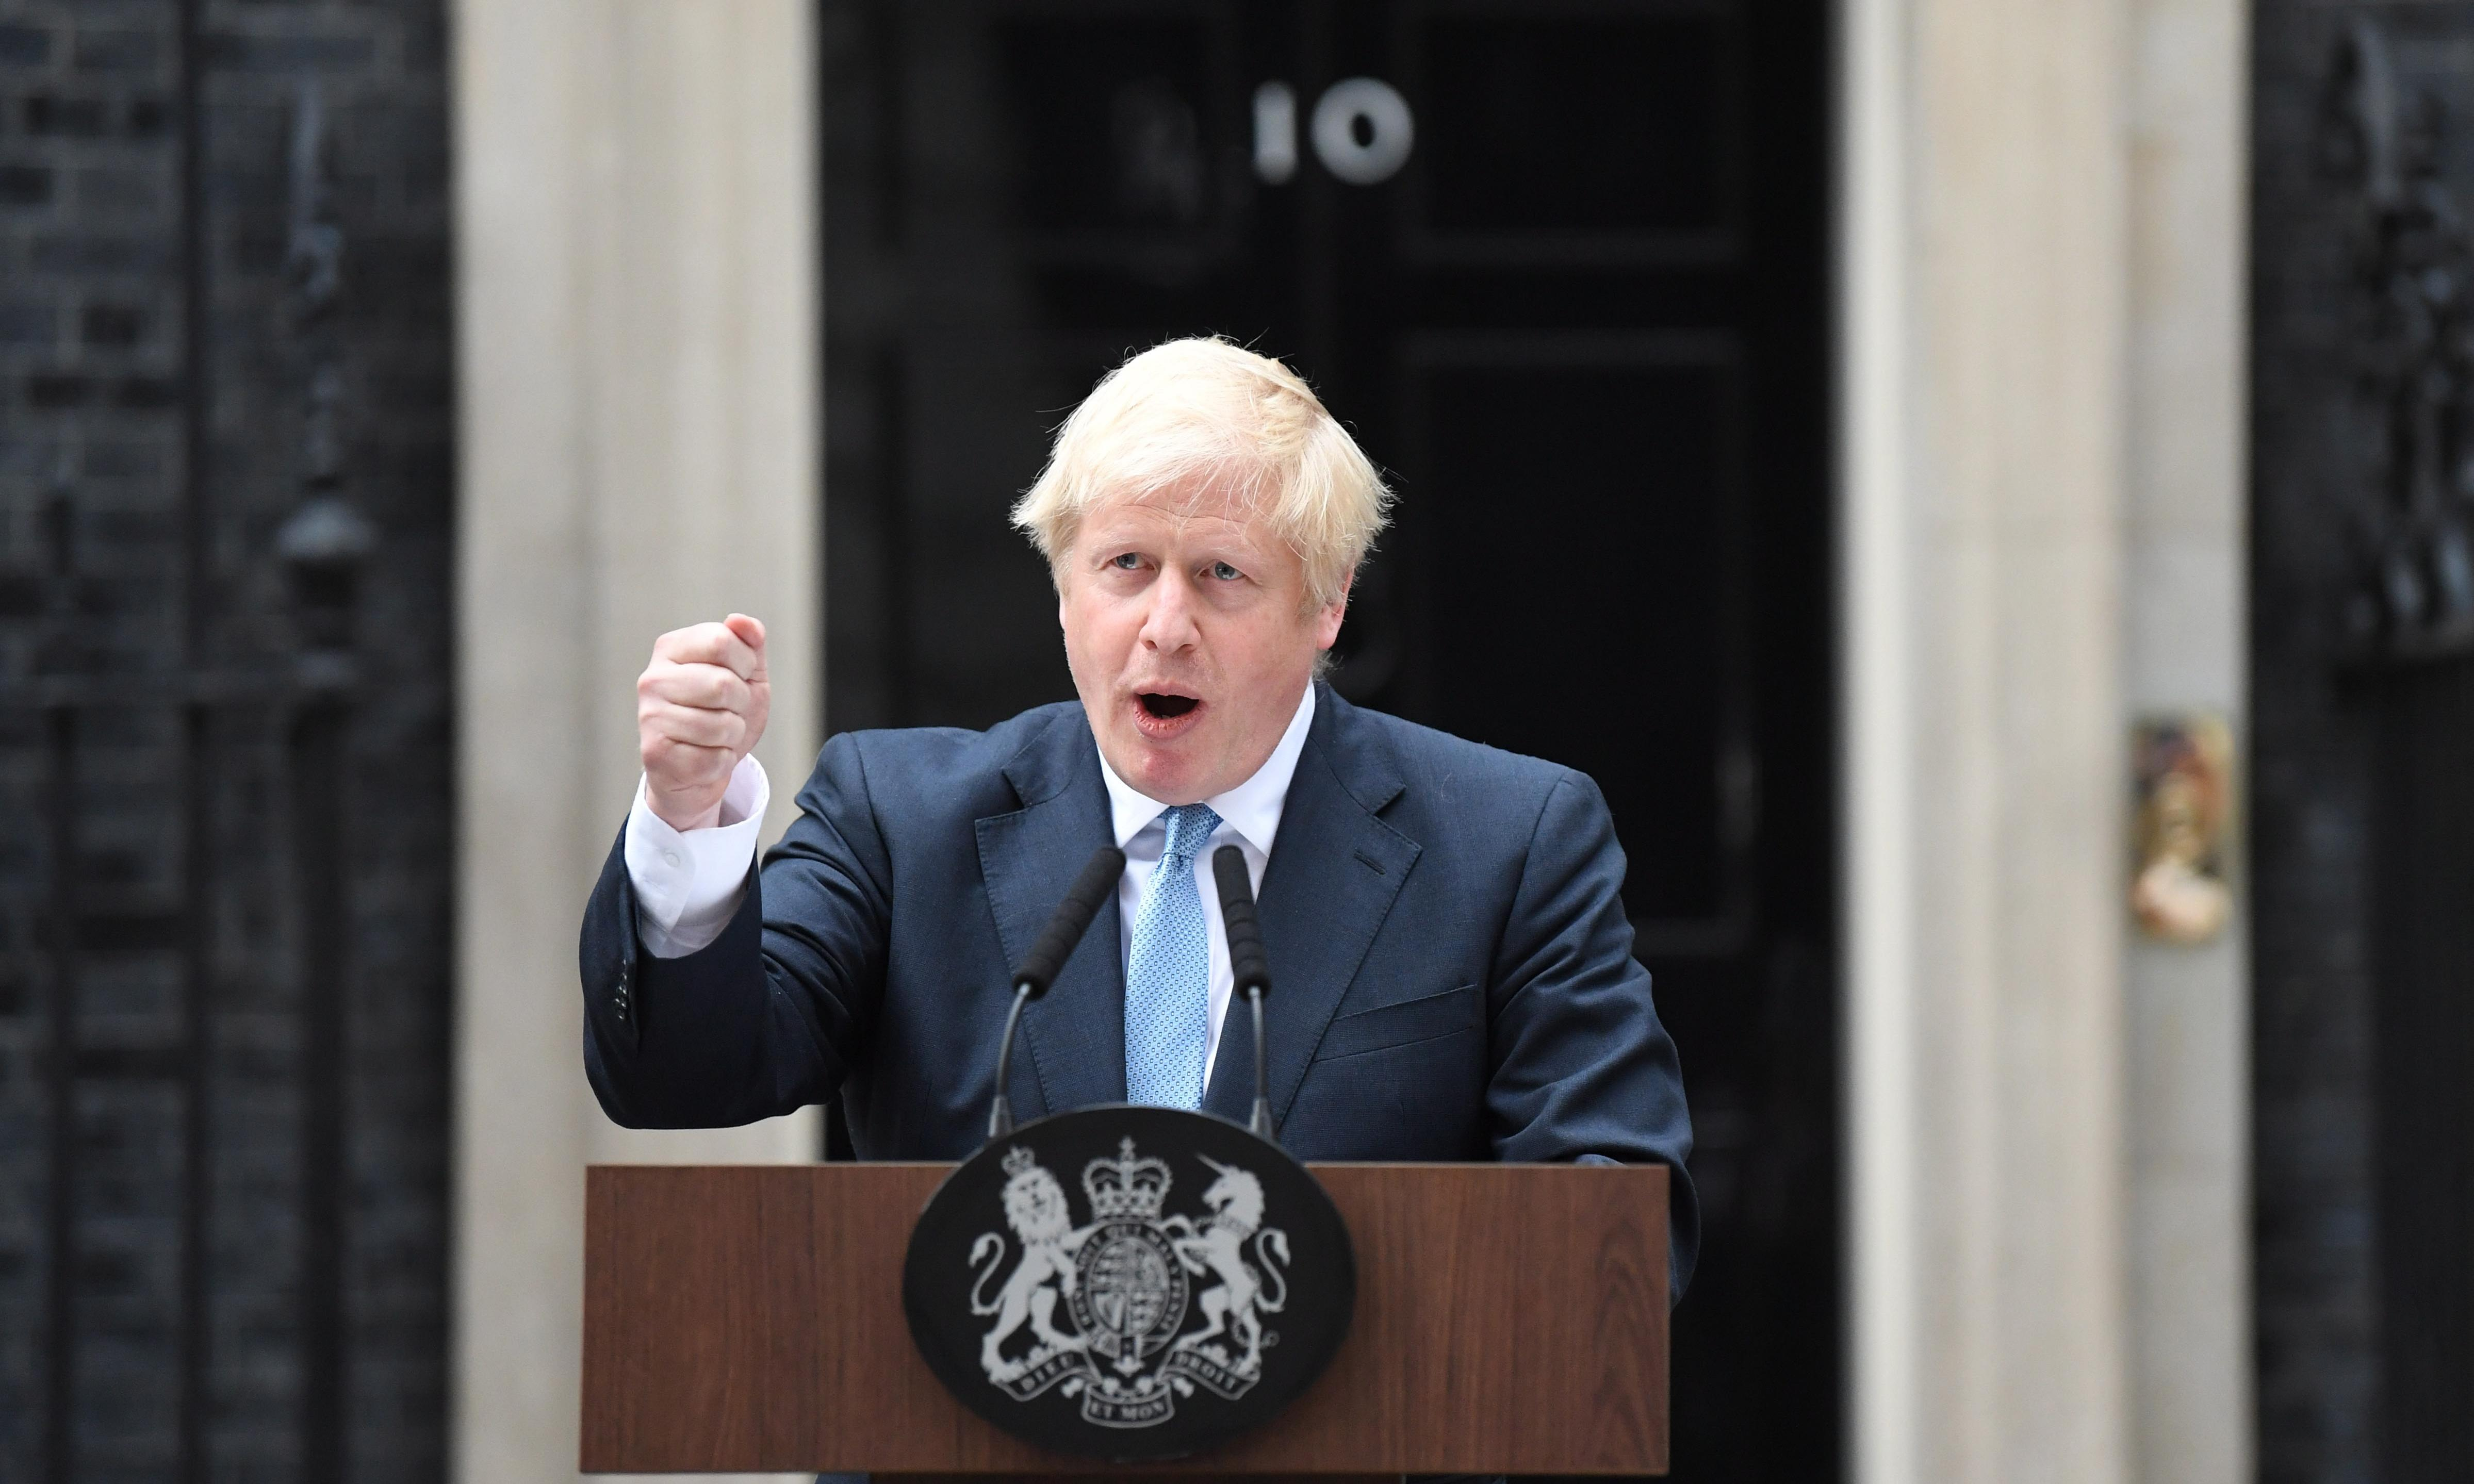 The Guardian view on Johnson's campaign pitch: save my job